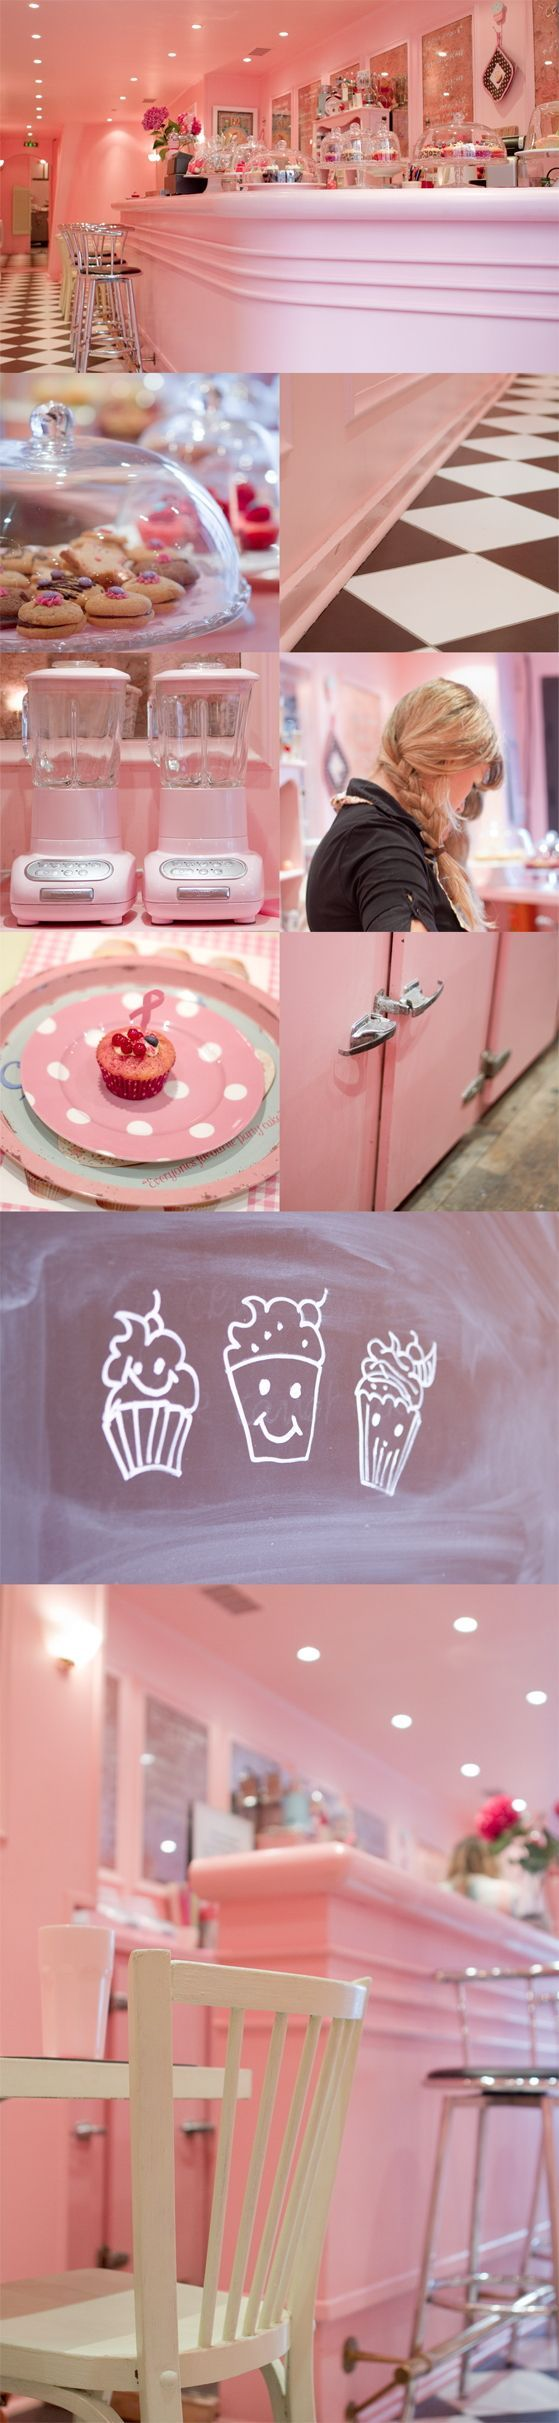 Pink cafe. This is so cute